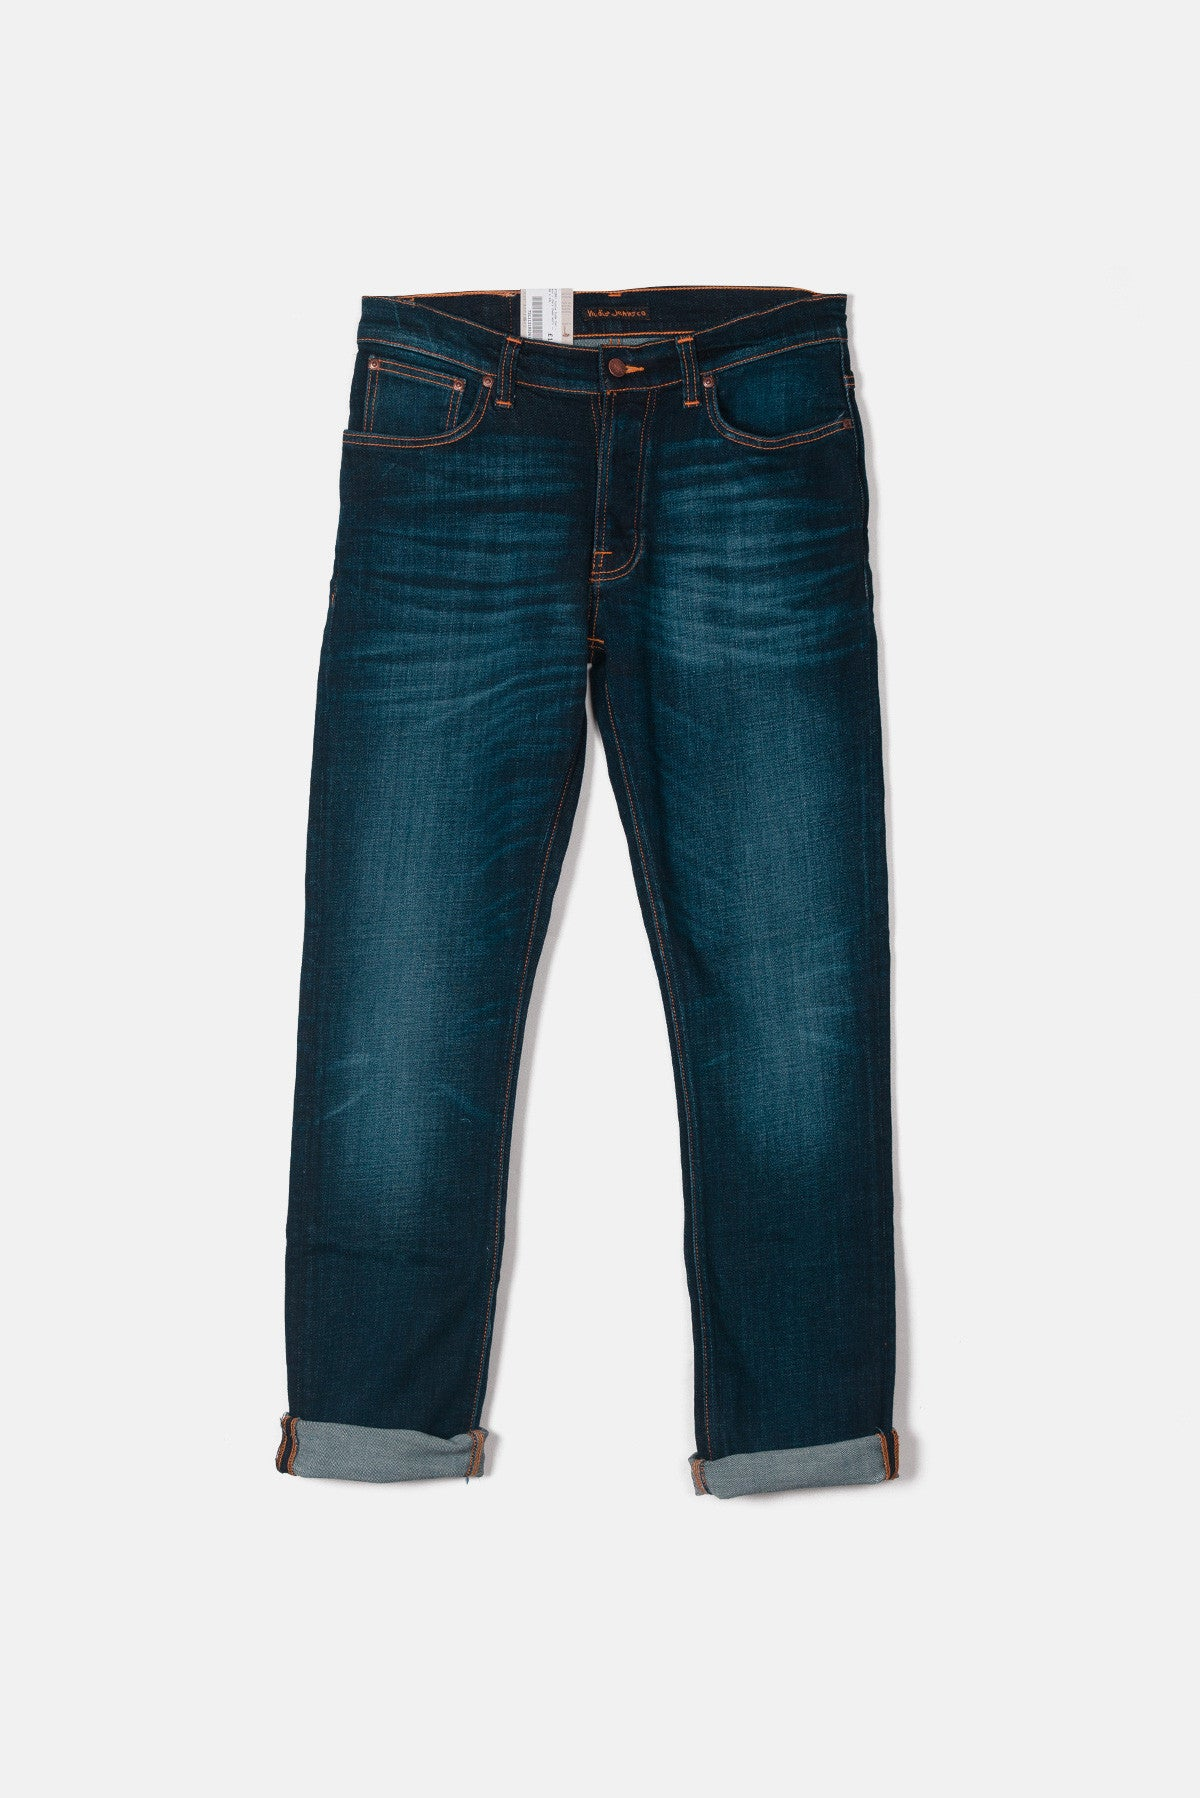 1d7184106b6e8 Nudie Dude Dan Jeans available from Priory